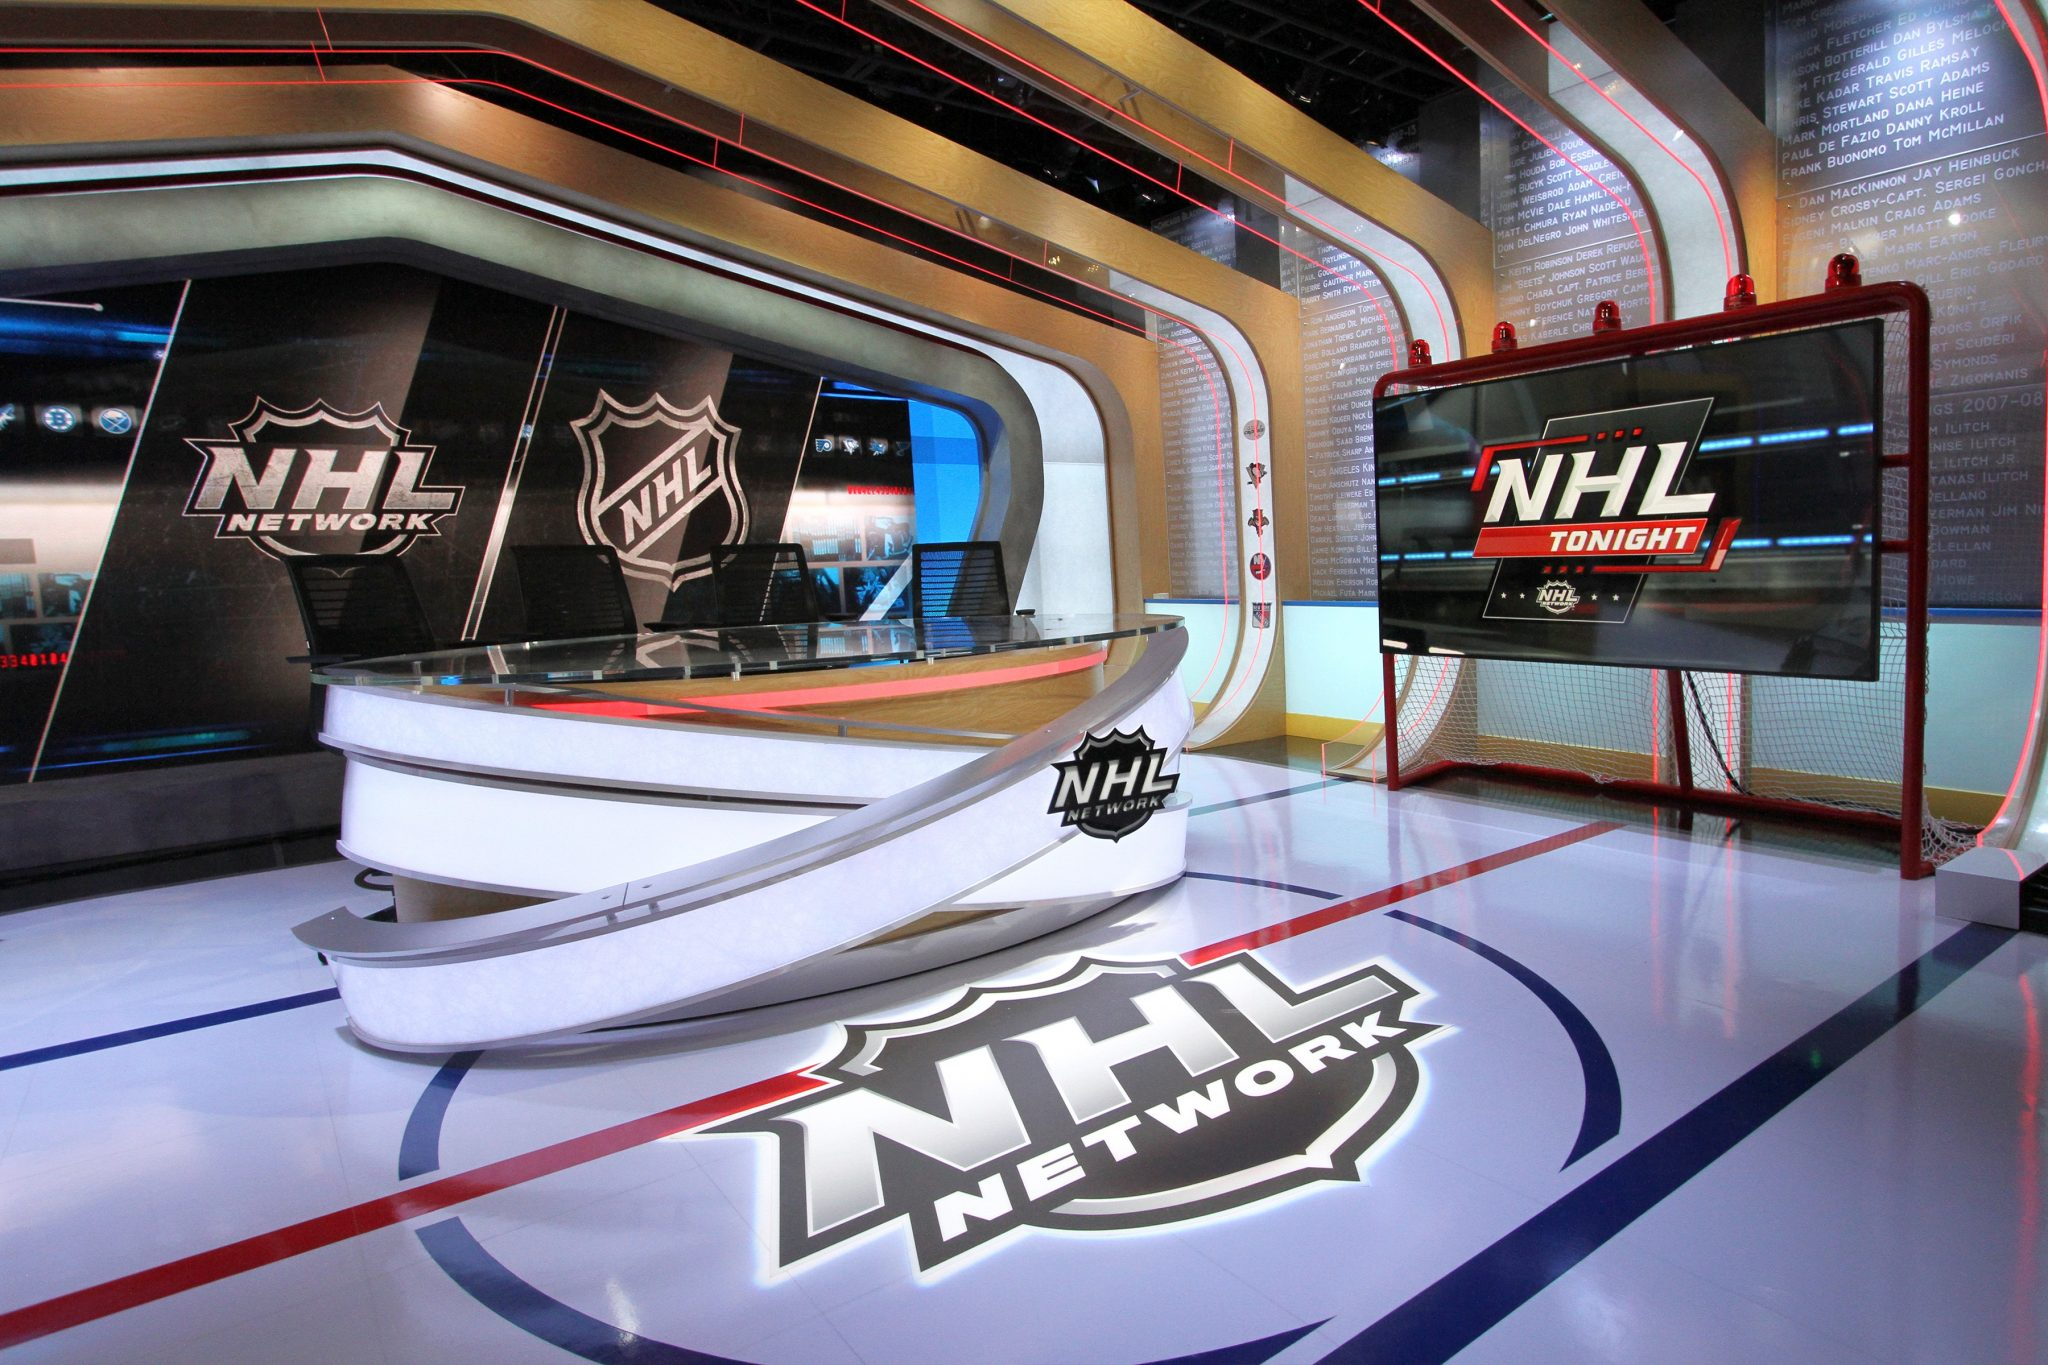 Led screen for tv tray NHL Network